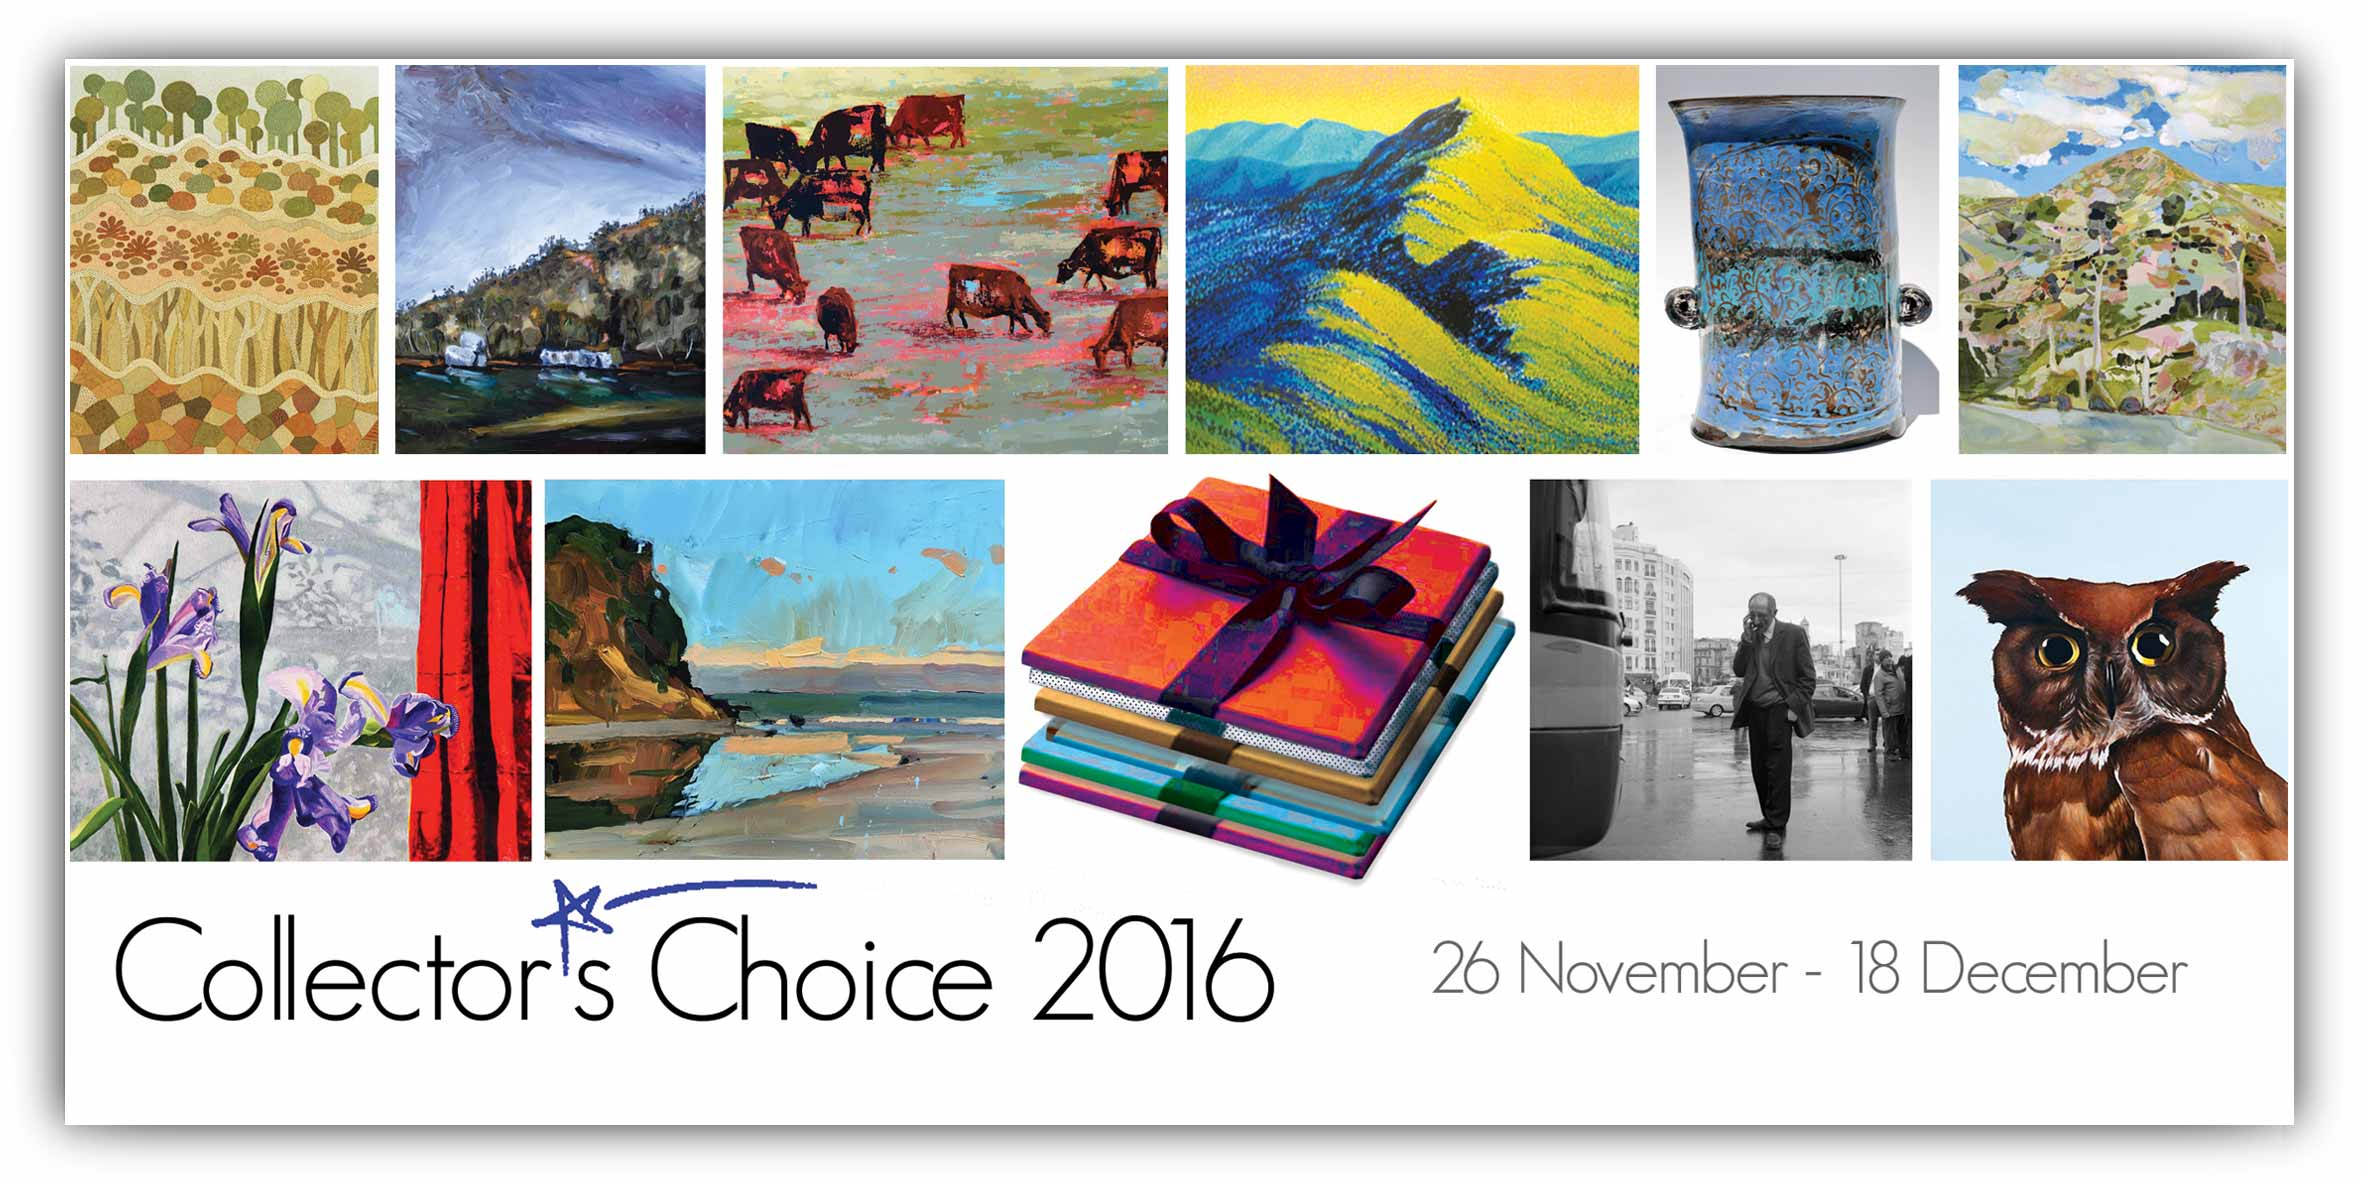 View Exhibition at Artsite Gallery, Sydney: 26 November - 18 December 2016. Collector´s Choice 2016